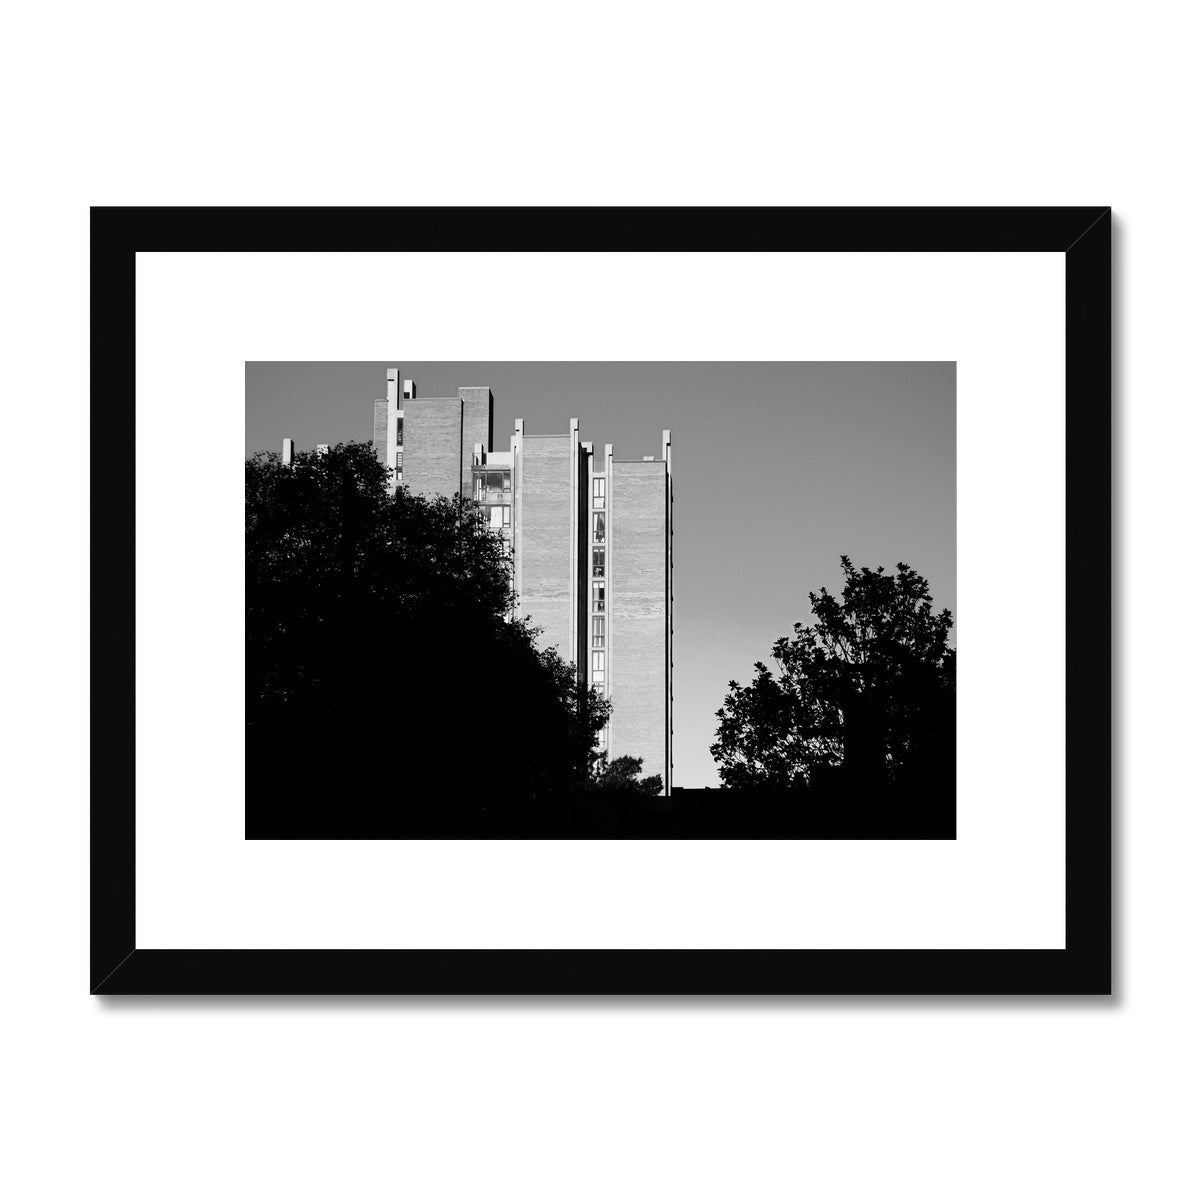 Heron House-01 Framed & Mounted Print